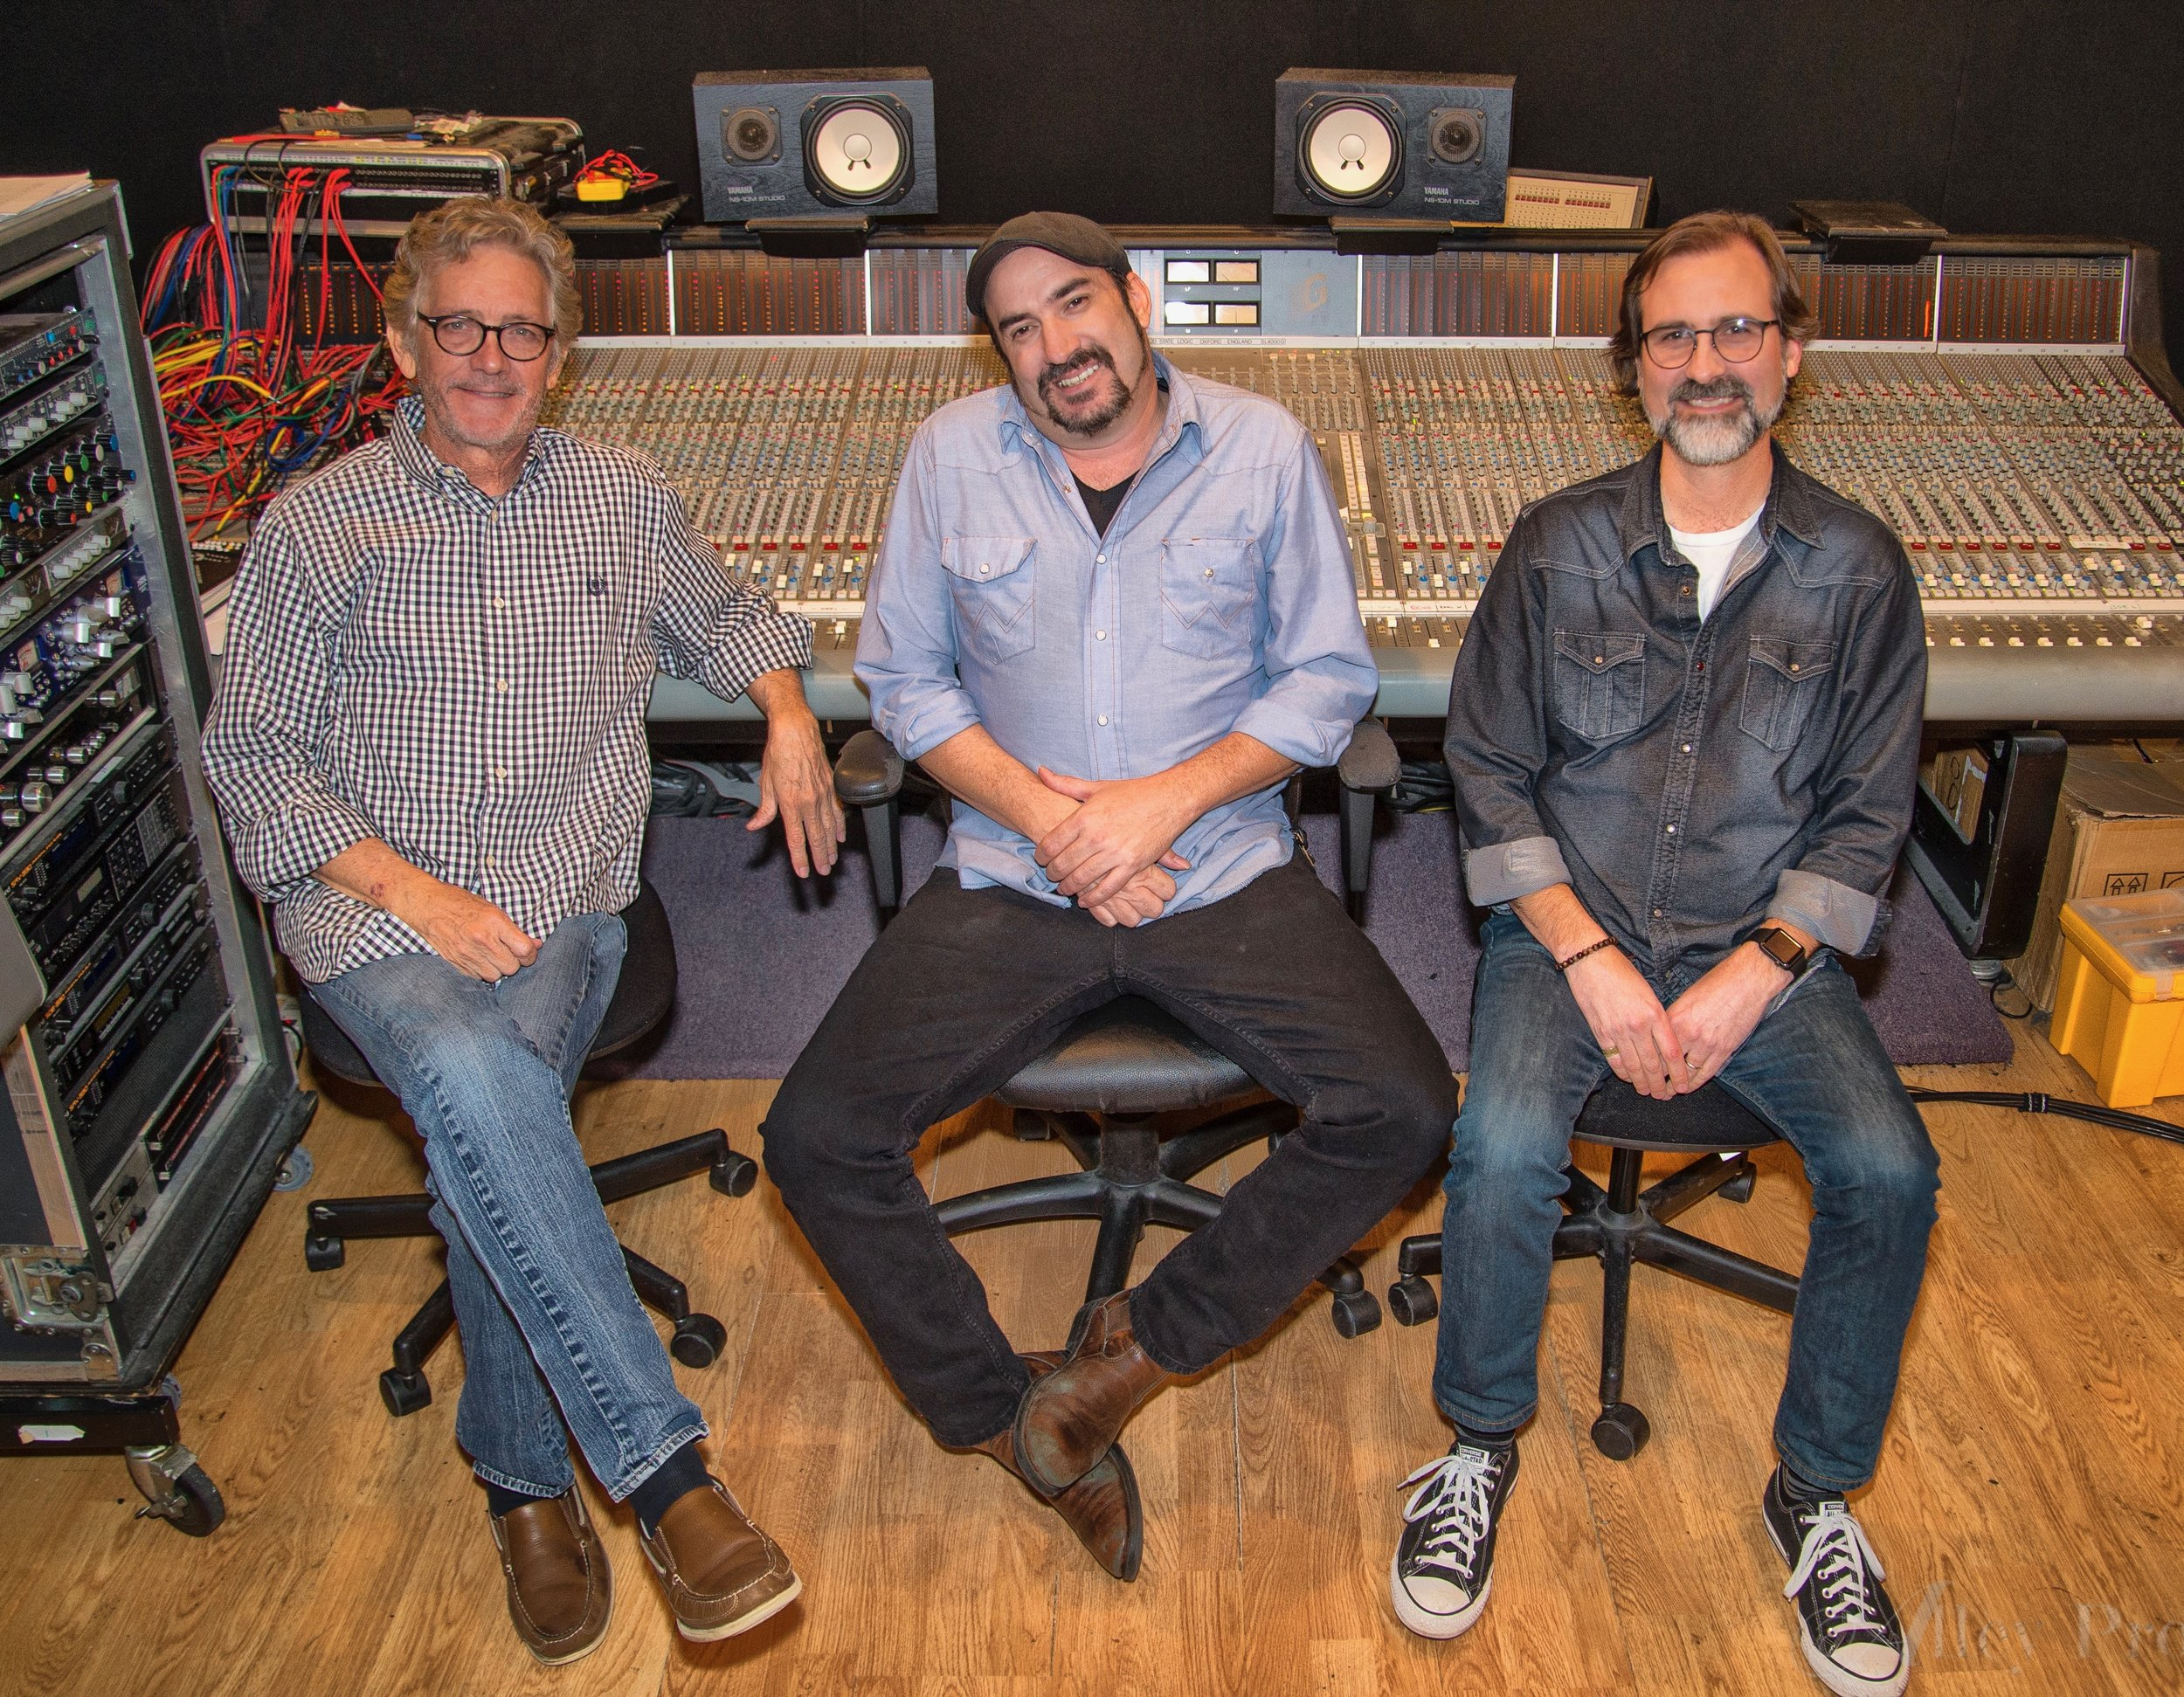 Dreamlined's Keith Stegall, James LeBlanc and producer Jimmy Nutt.